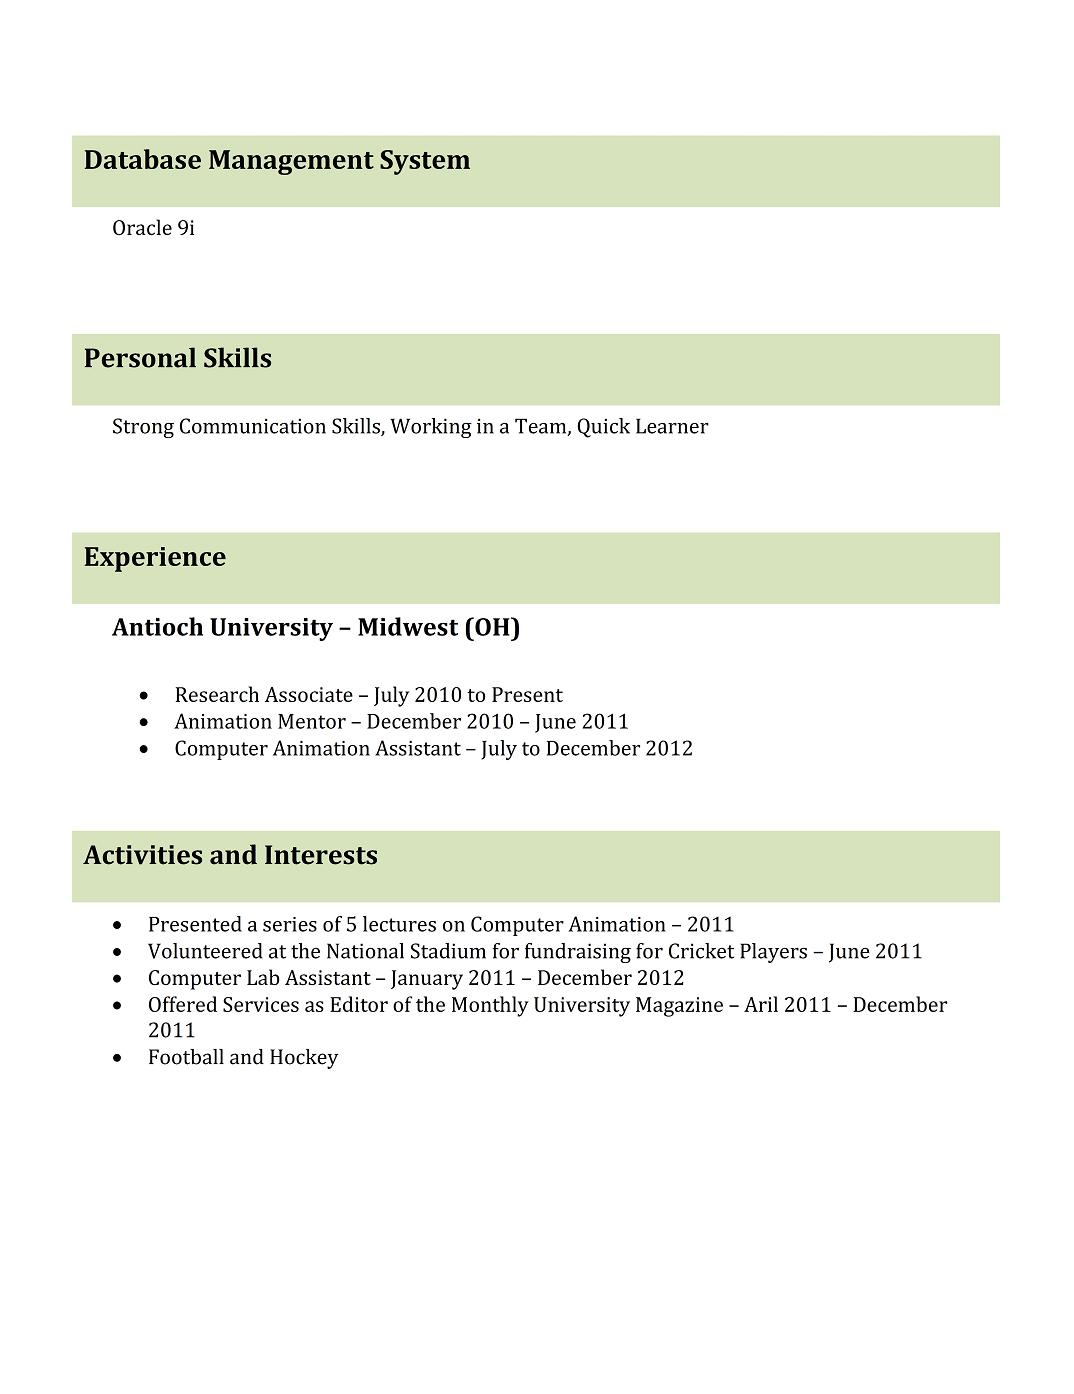 freshers it resume format sample cricket player professional resume2 campaign manager Resume Cricket Player Resume Format